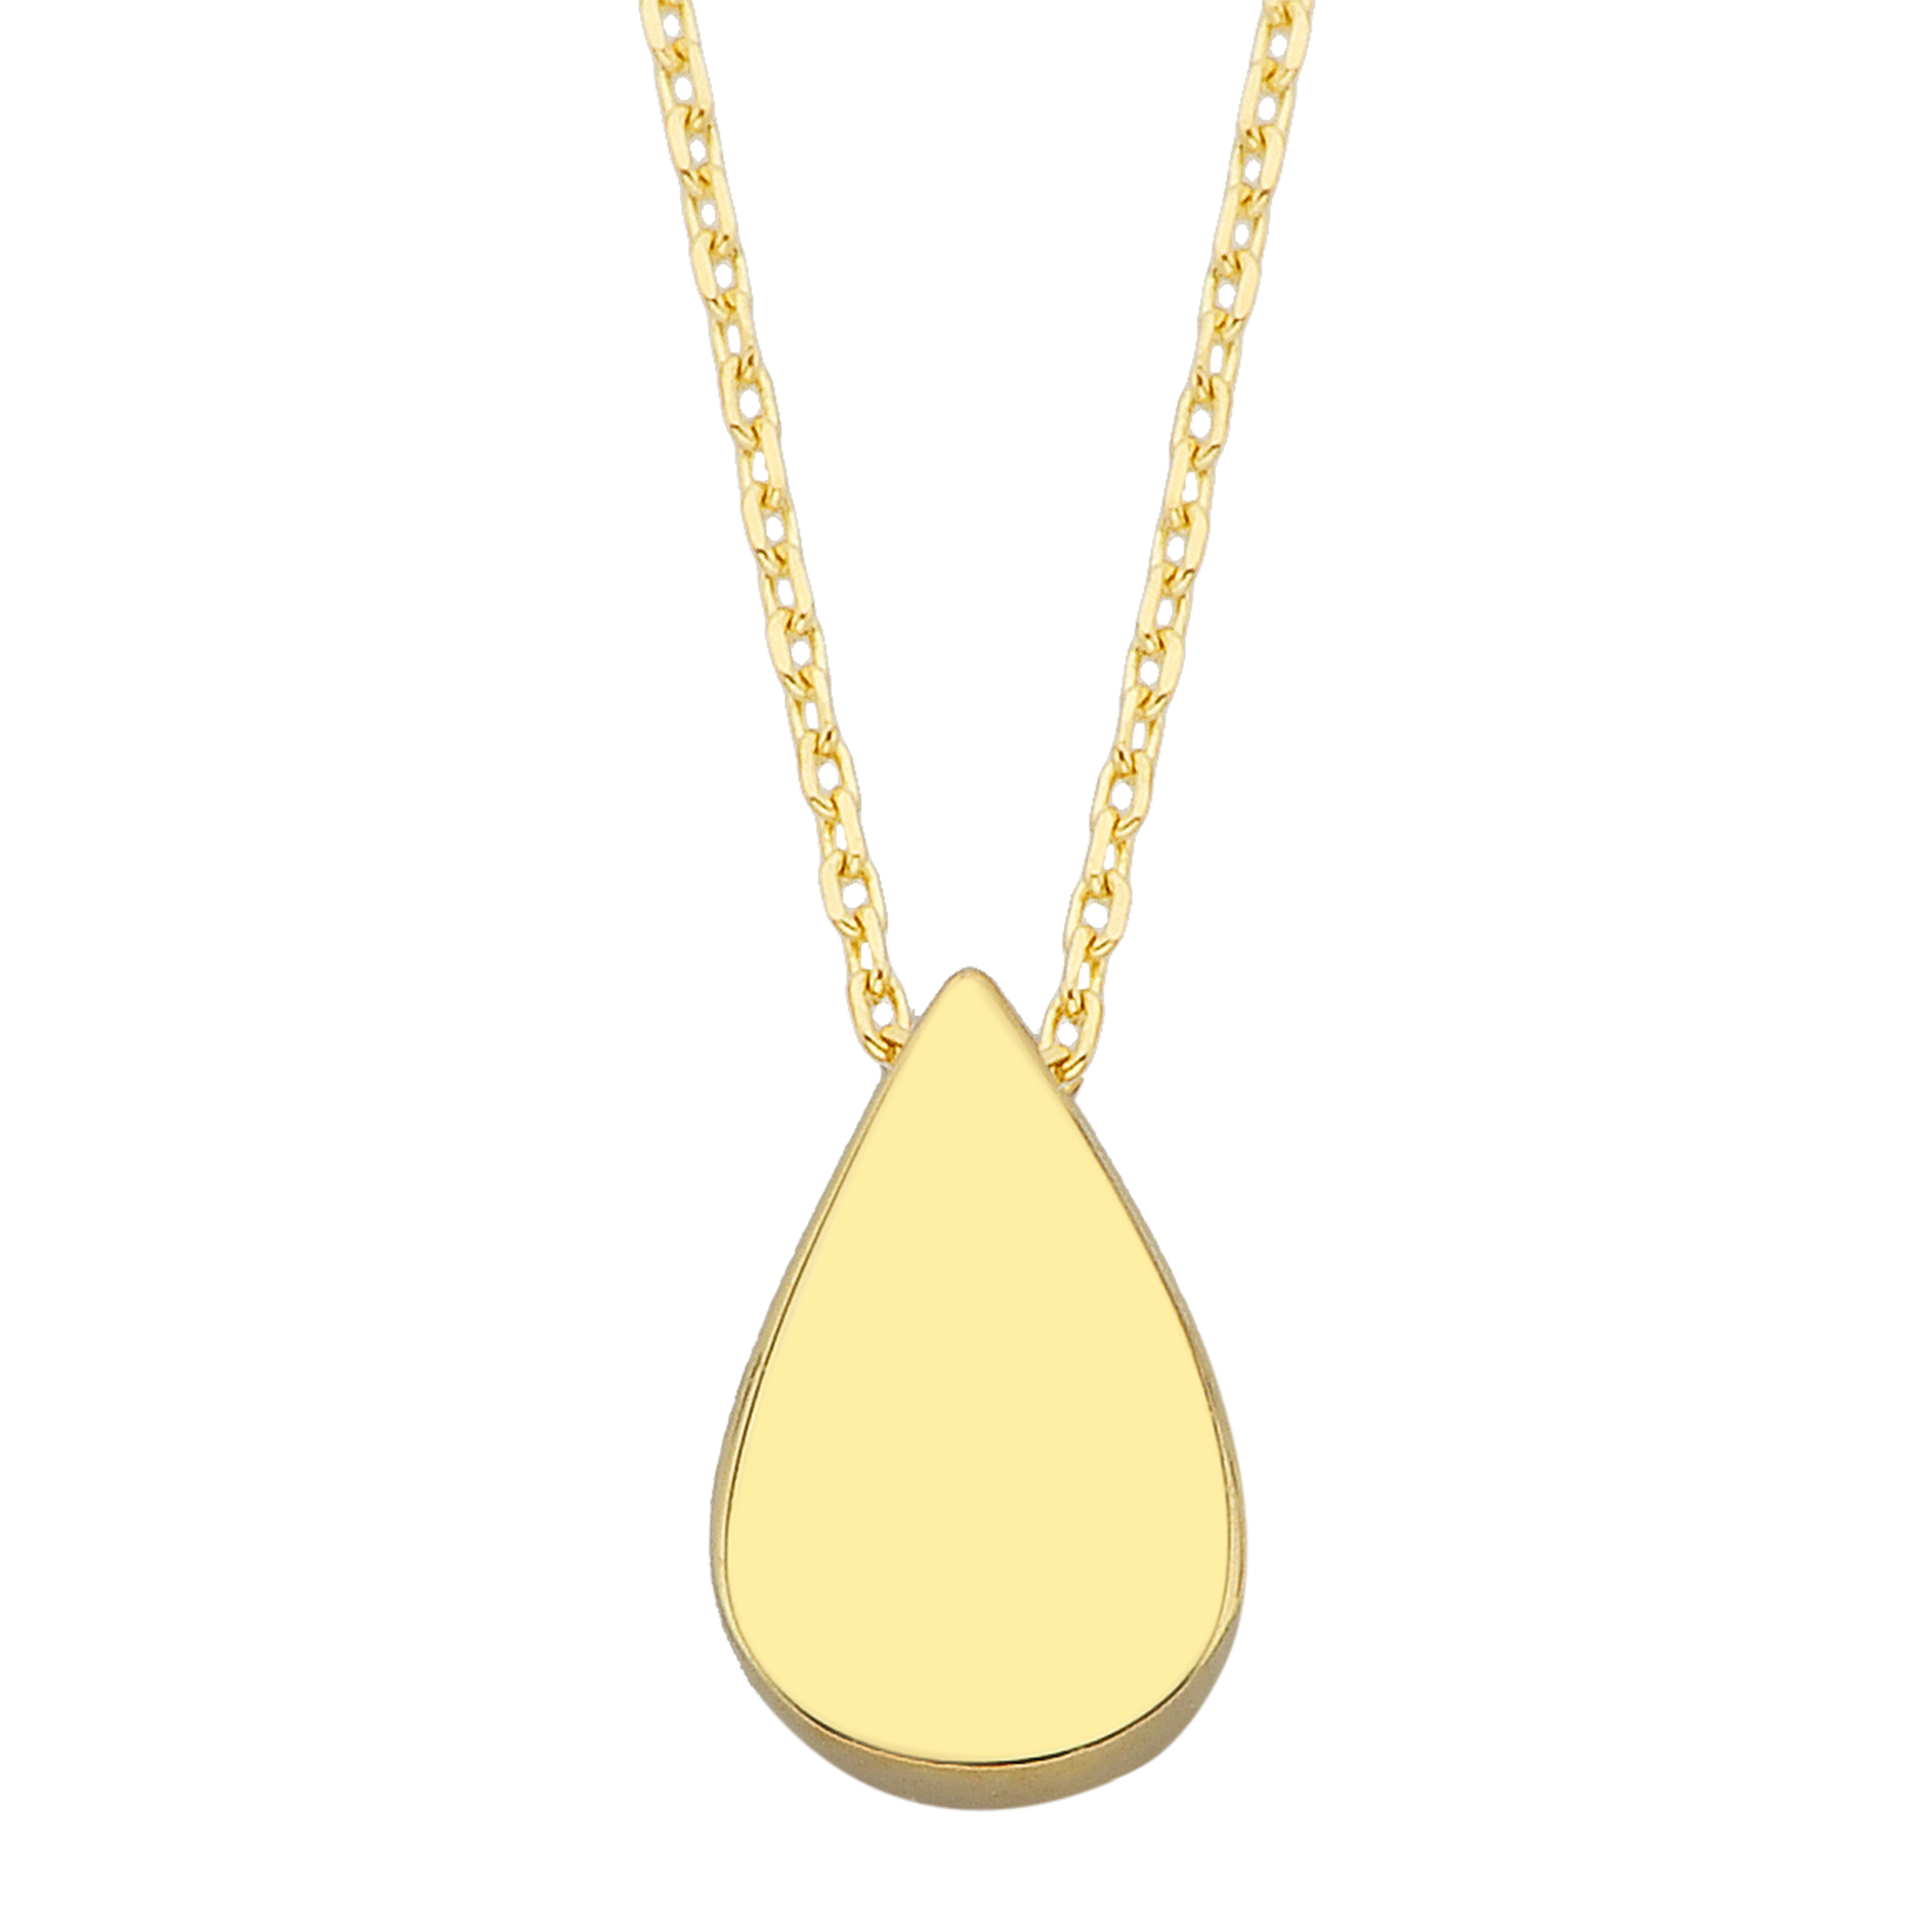 14K Real Solid Gold Teardrop Necklace for Women Girlfriend Mom Her Best Birthday Christmas Gift Tiny Dainty Charm Gold Pendant Chain jewelry